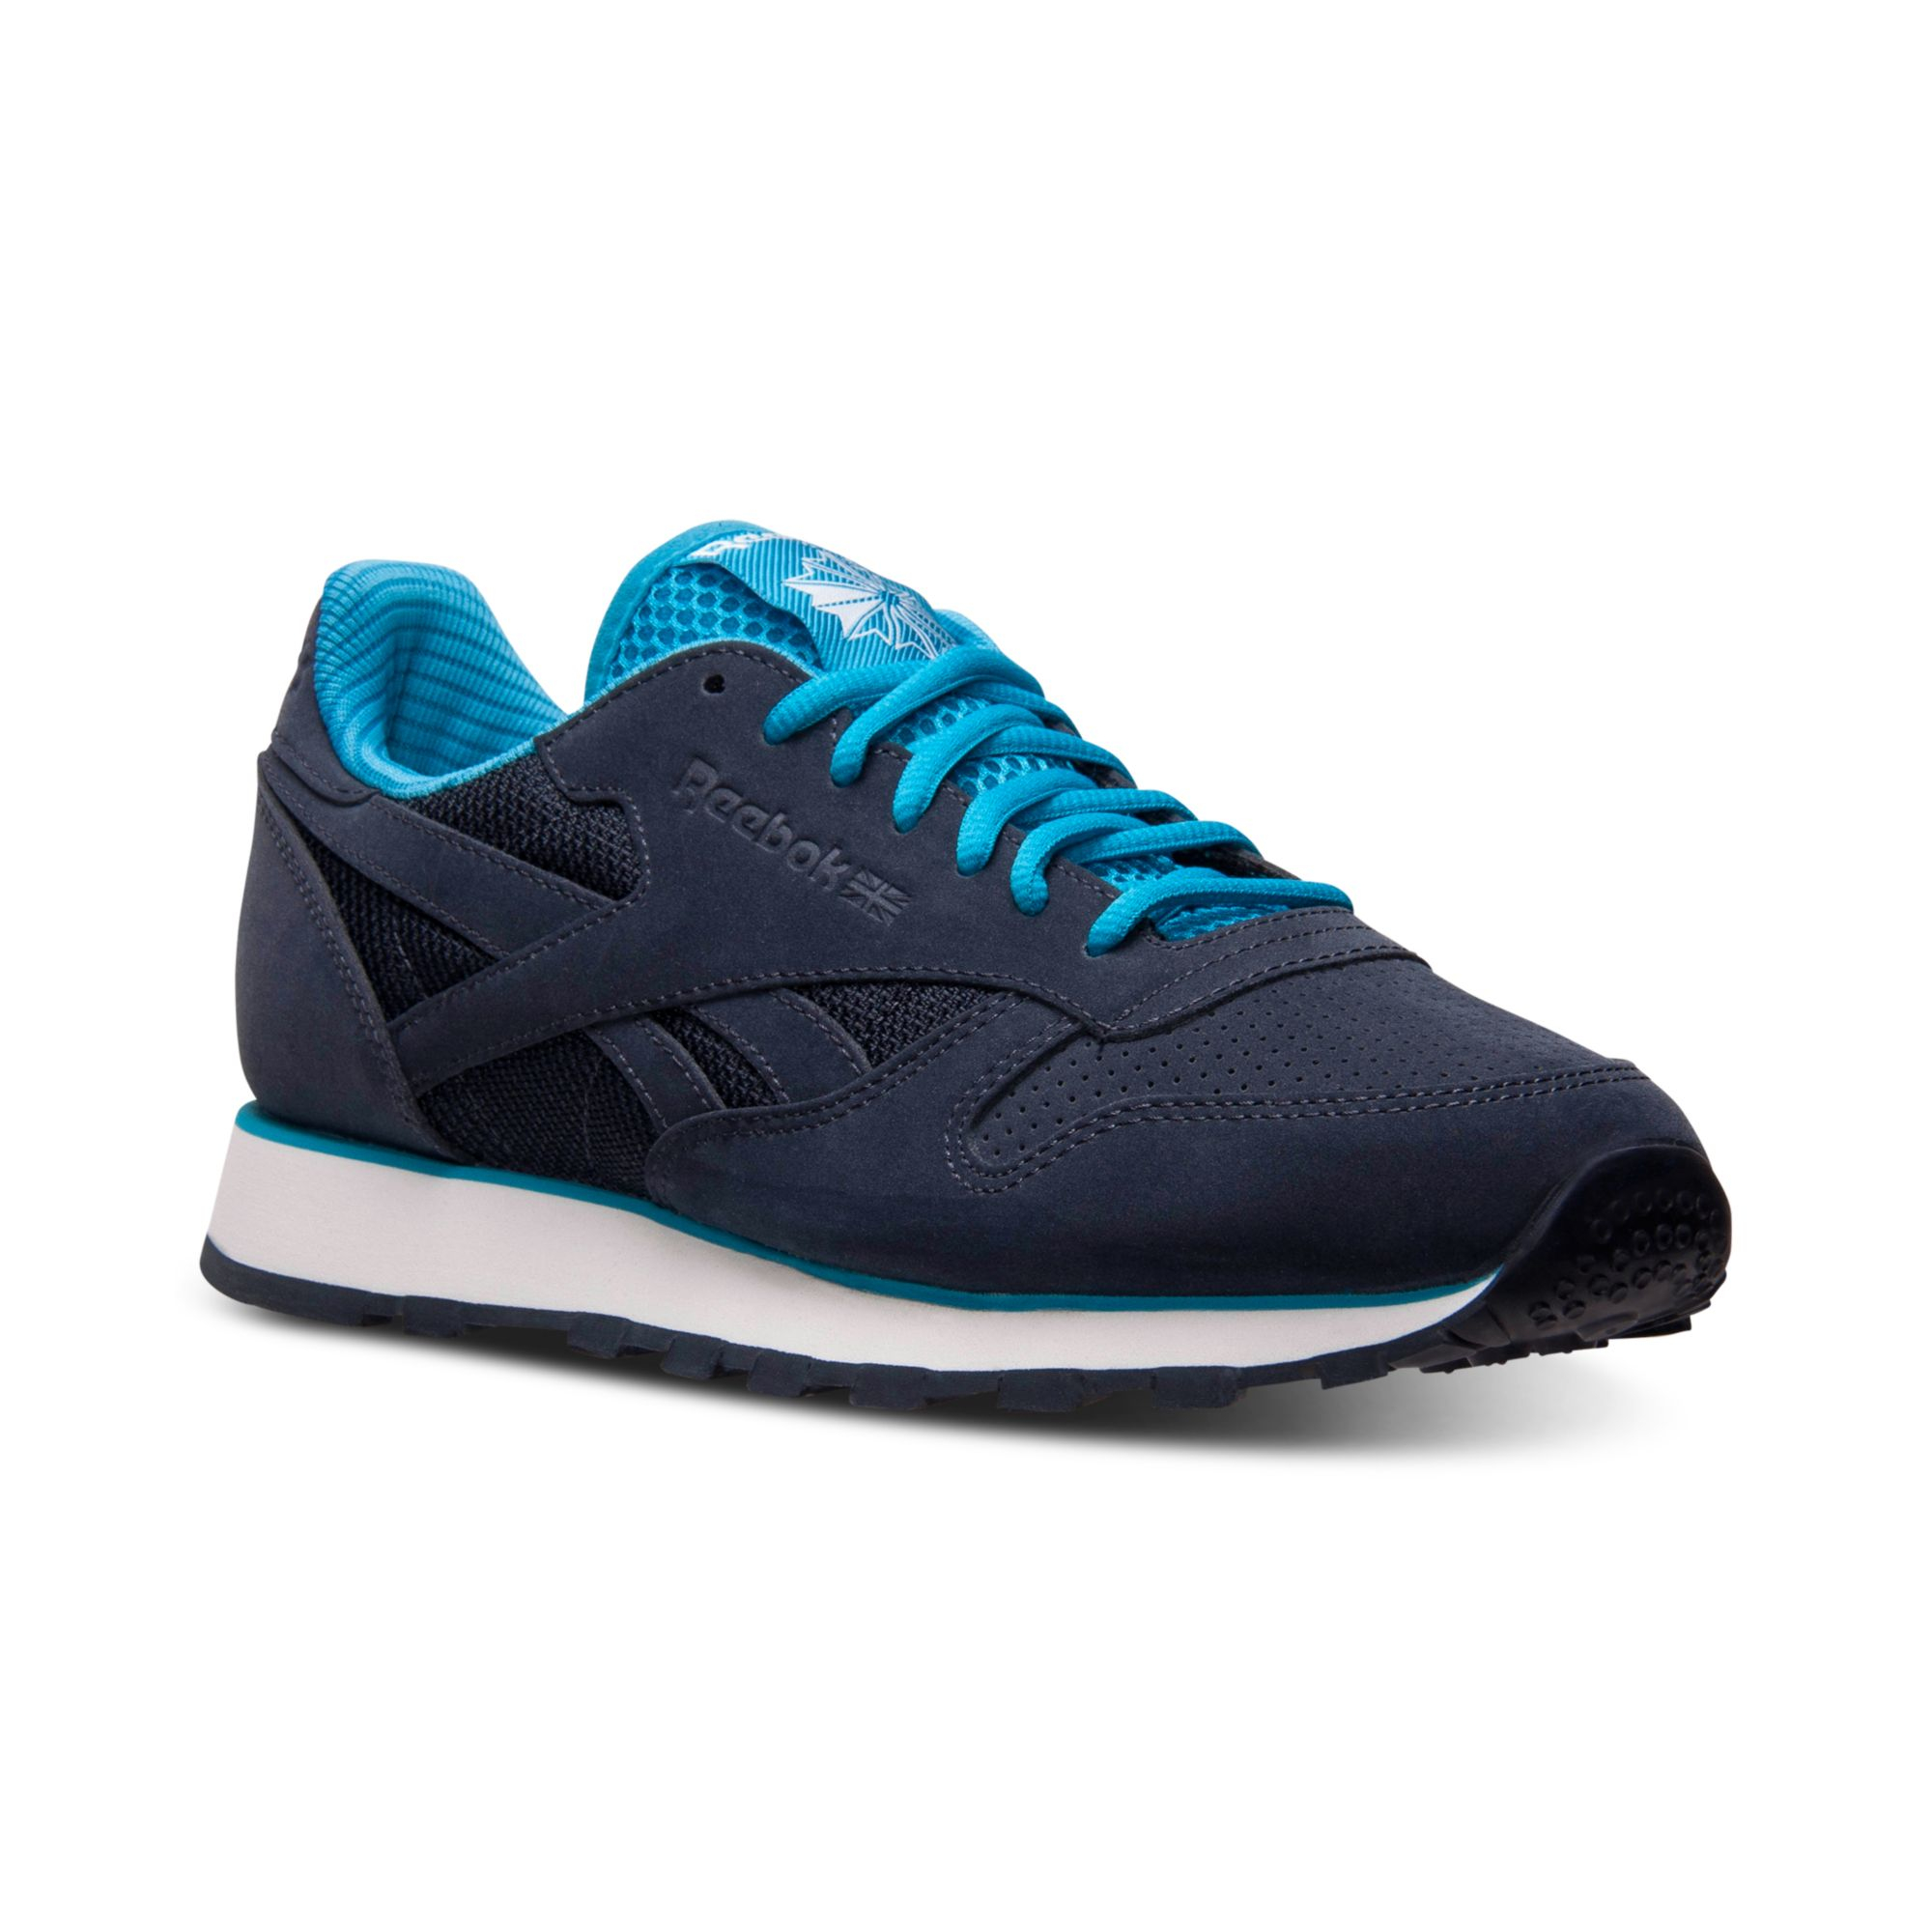 reebok mens classic leather tech casual sneakers from finish line in blue for men navy blue. Black Bedroom Furniture Sets. Home Design Ideas